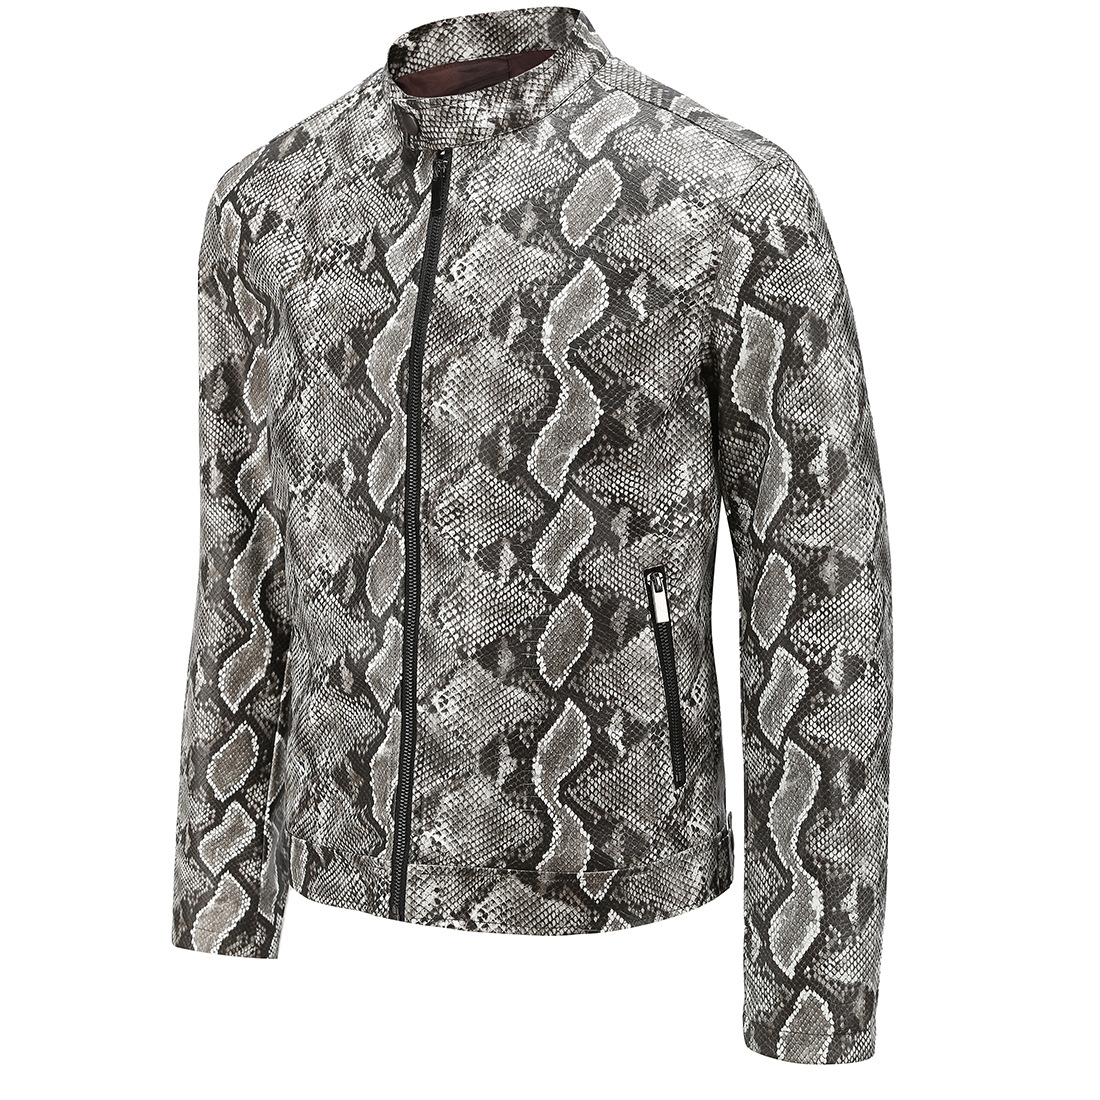 2019 Autumn New Style Foreign Trade Ouma Washing PU Leather Snakeskin Print MEN'S Leather Jacket Coat PY002